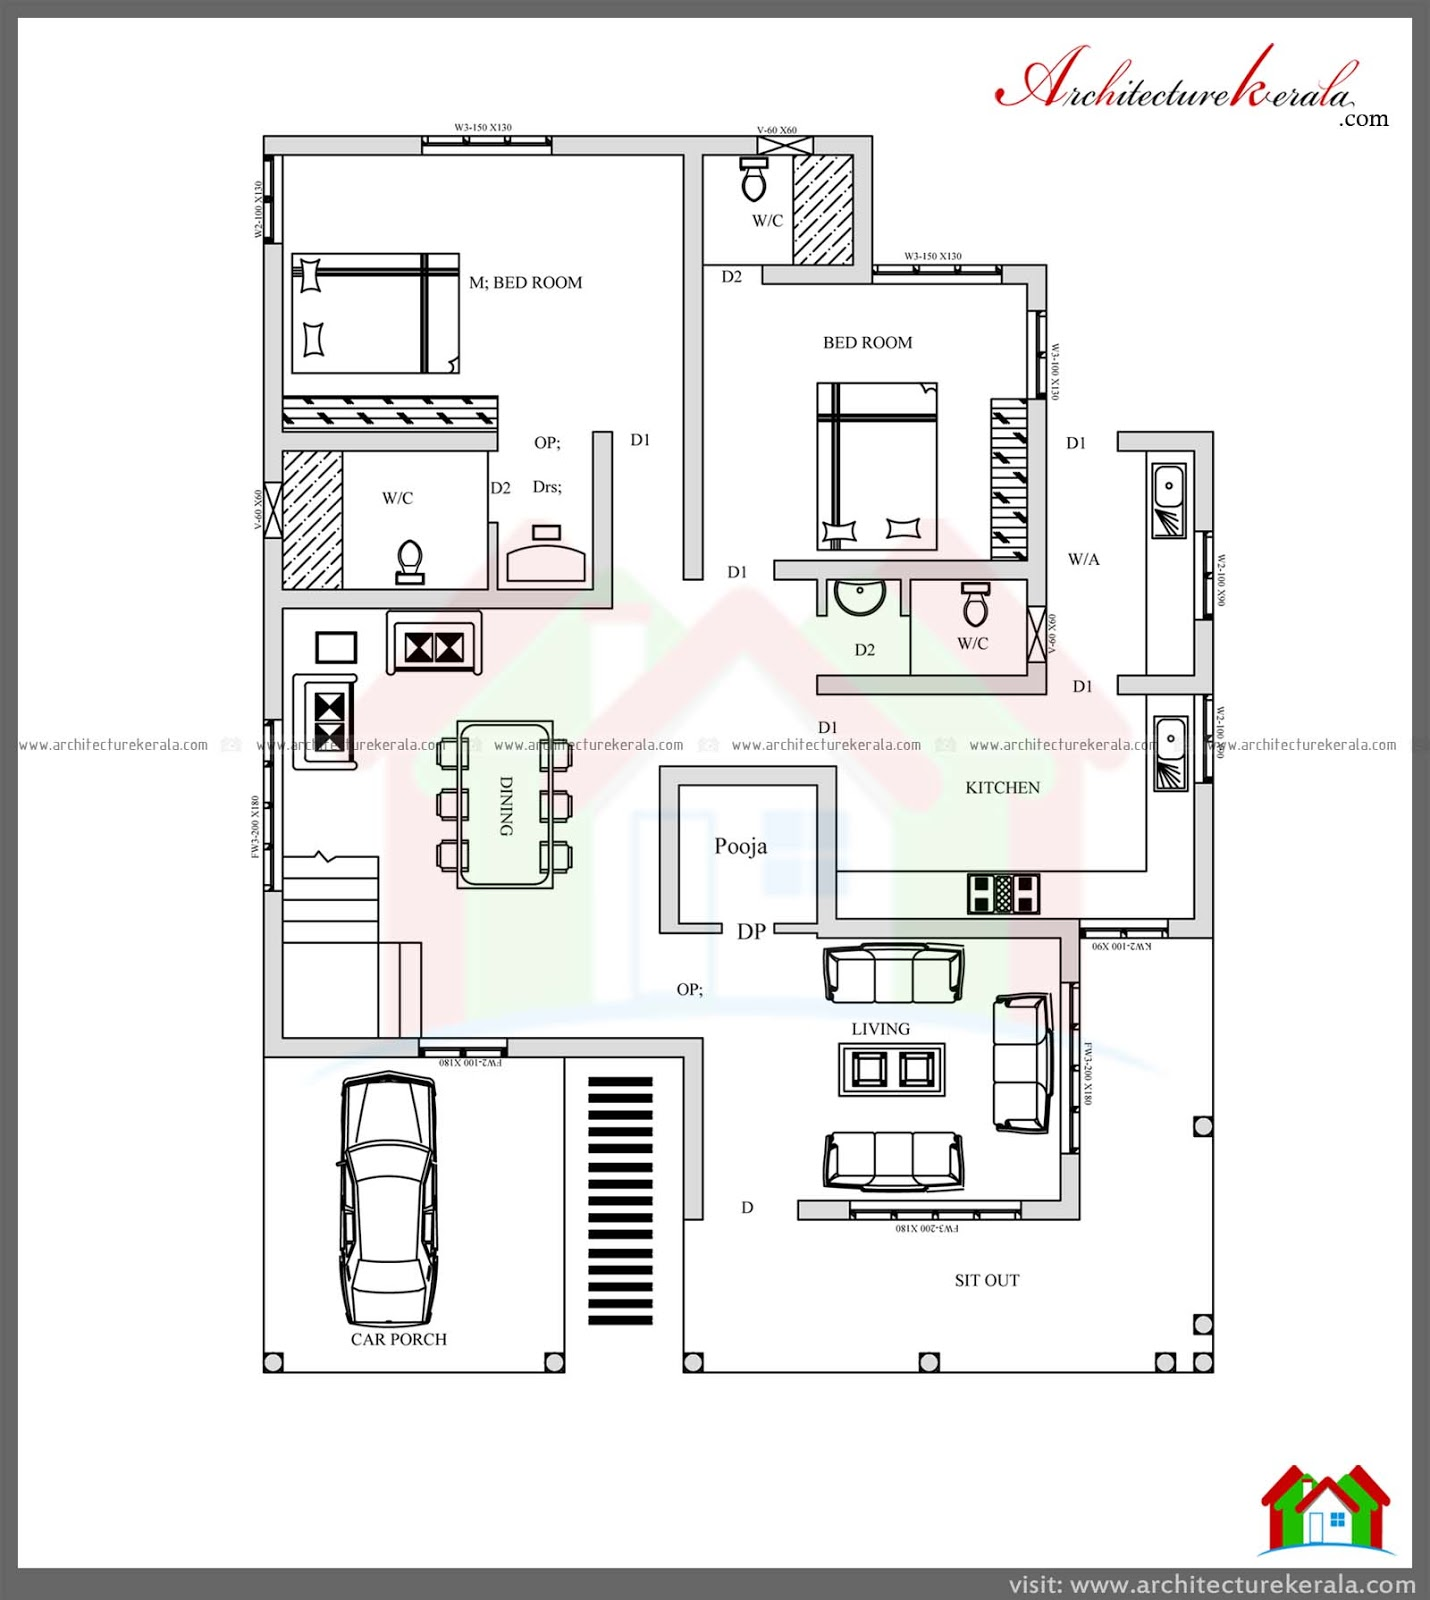 4 bed house plan with pooja room architecture kerala